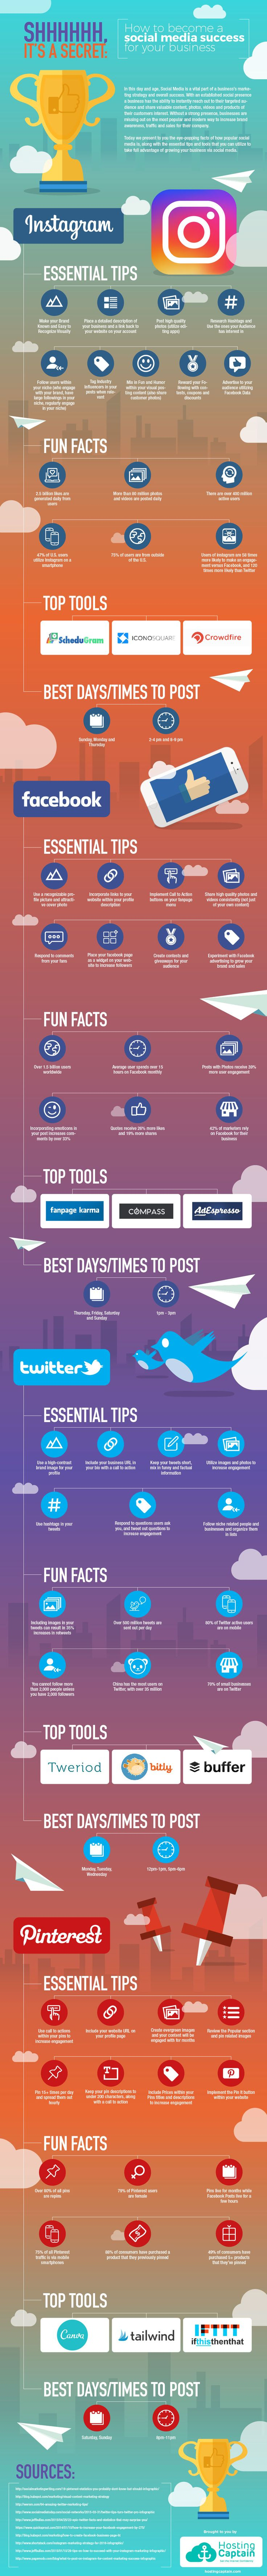 Social Media Tips & Tools #infographic curated from 10 articles by 8 distinct sources like @JeffBullas @socialmedia2day via @angela4design